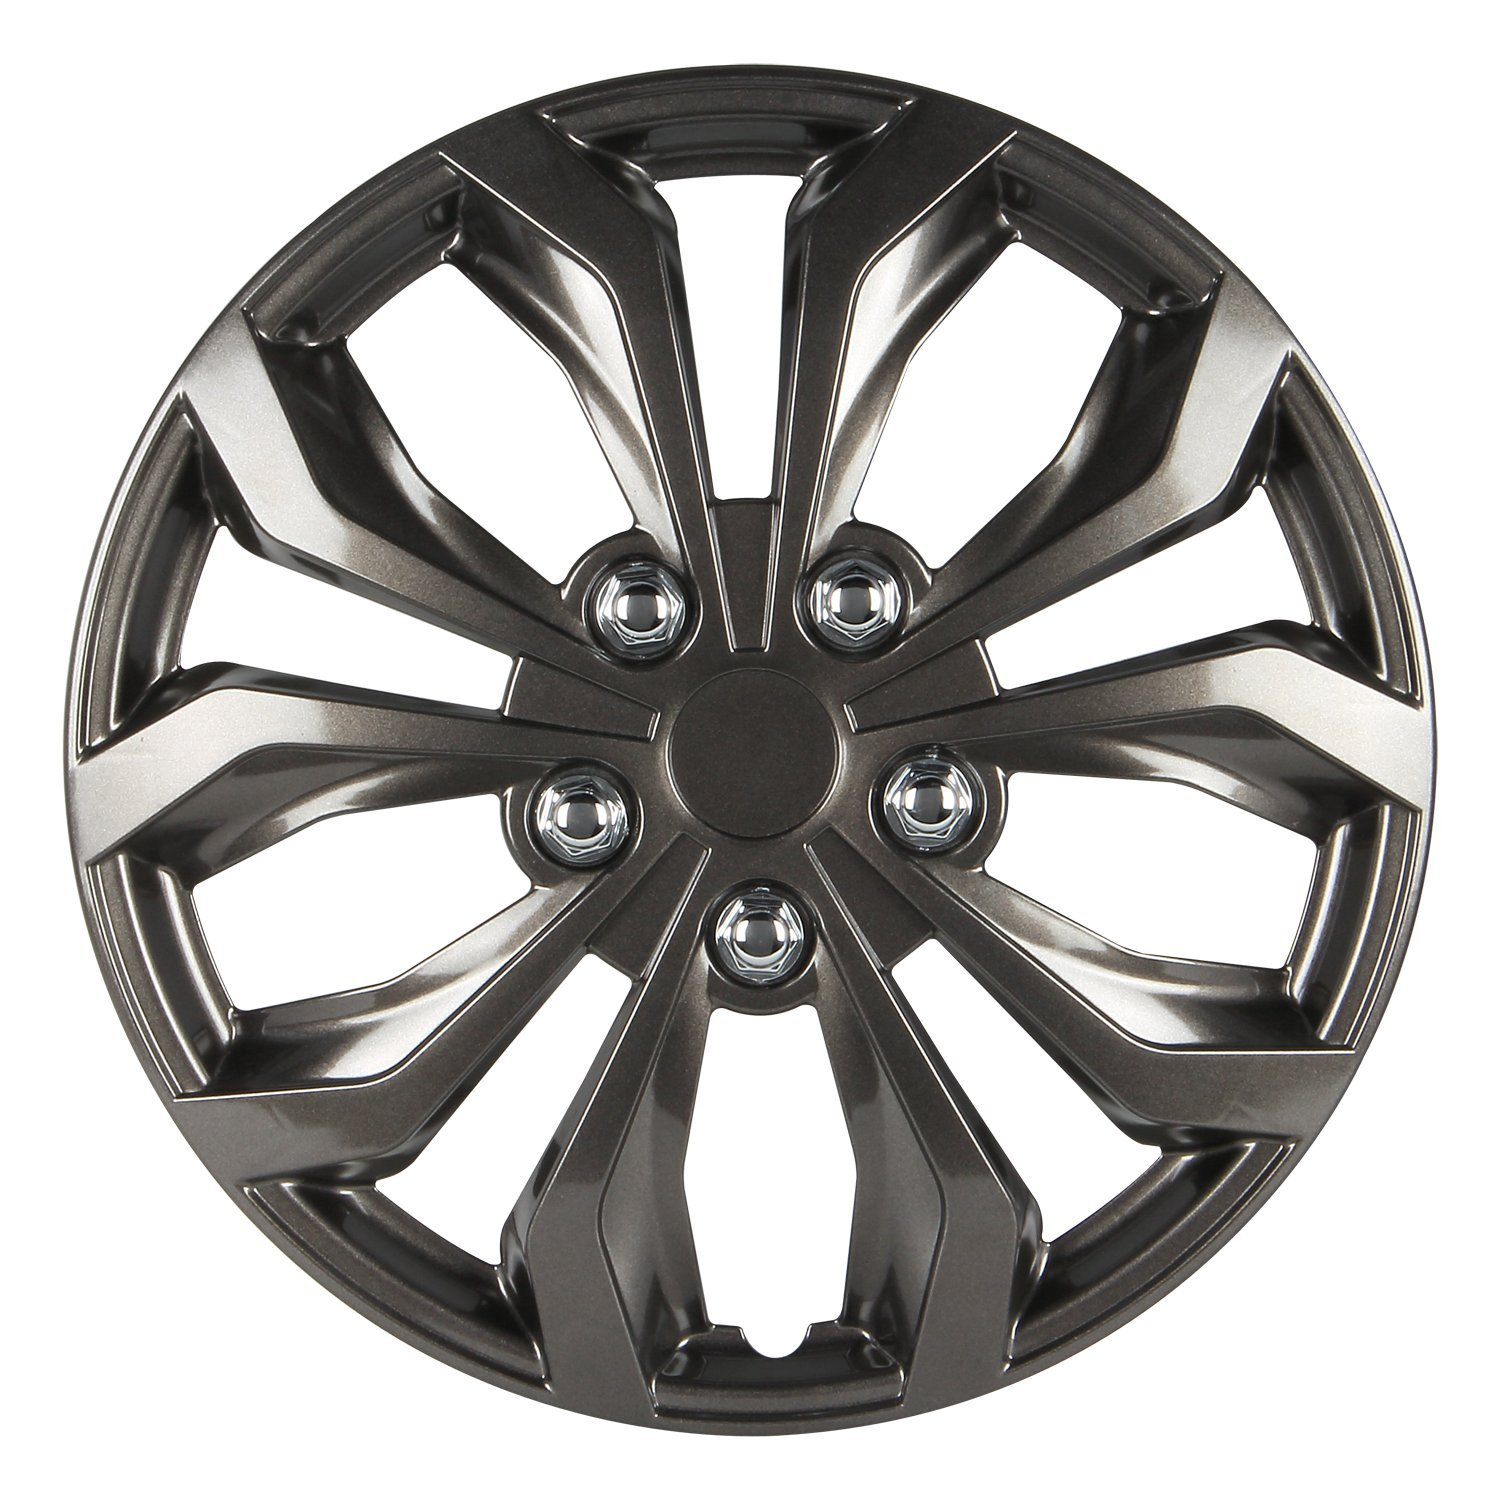 Pilot Automotive WH555-16GM-B Performance 16 Wheel Cover Gunmetal Finish, Pack of 4